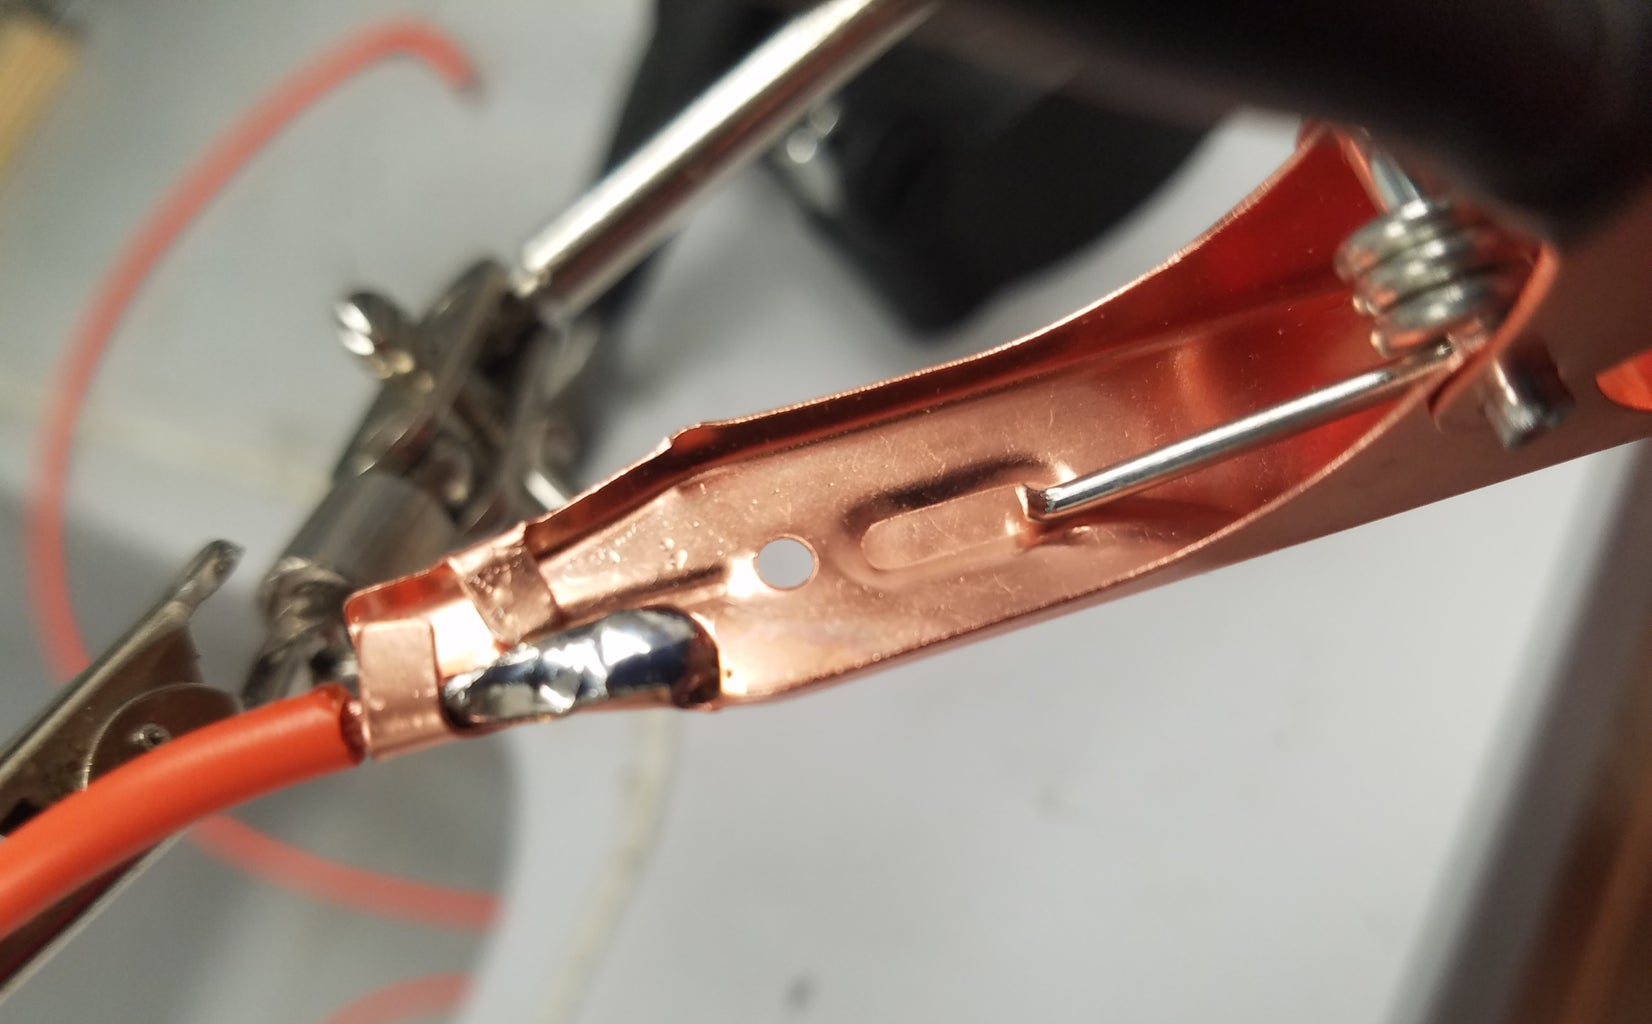 Solder Test Lead Clips Onto the Panel's Terminals